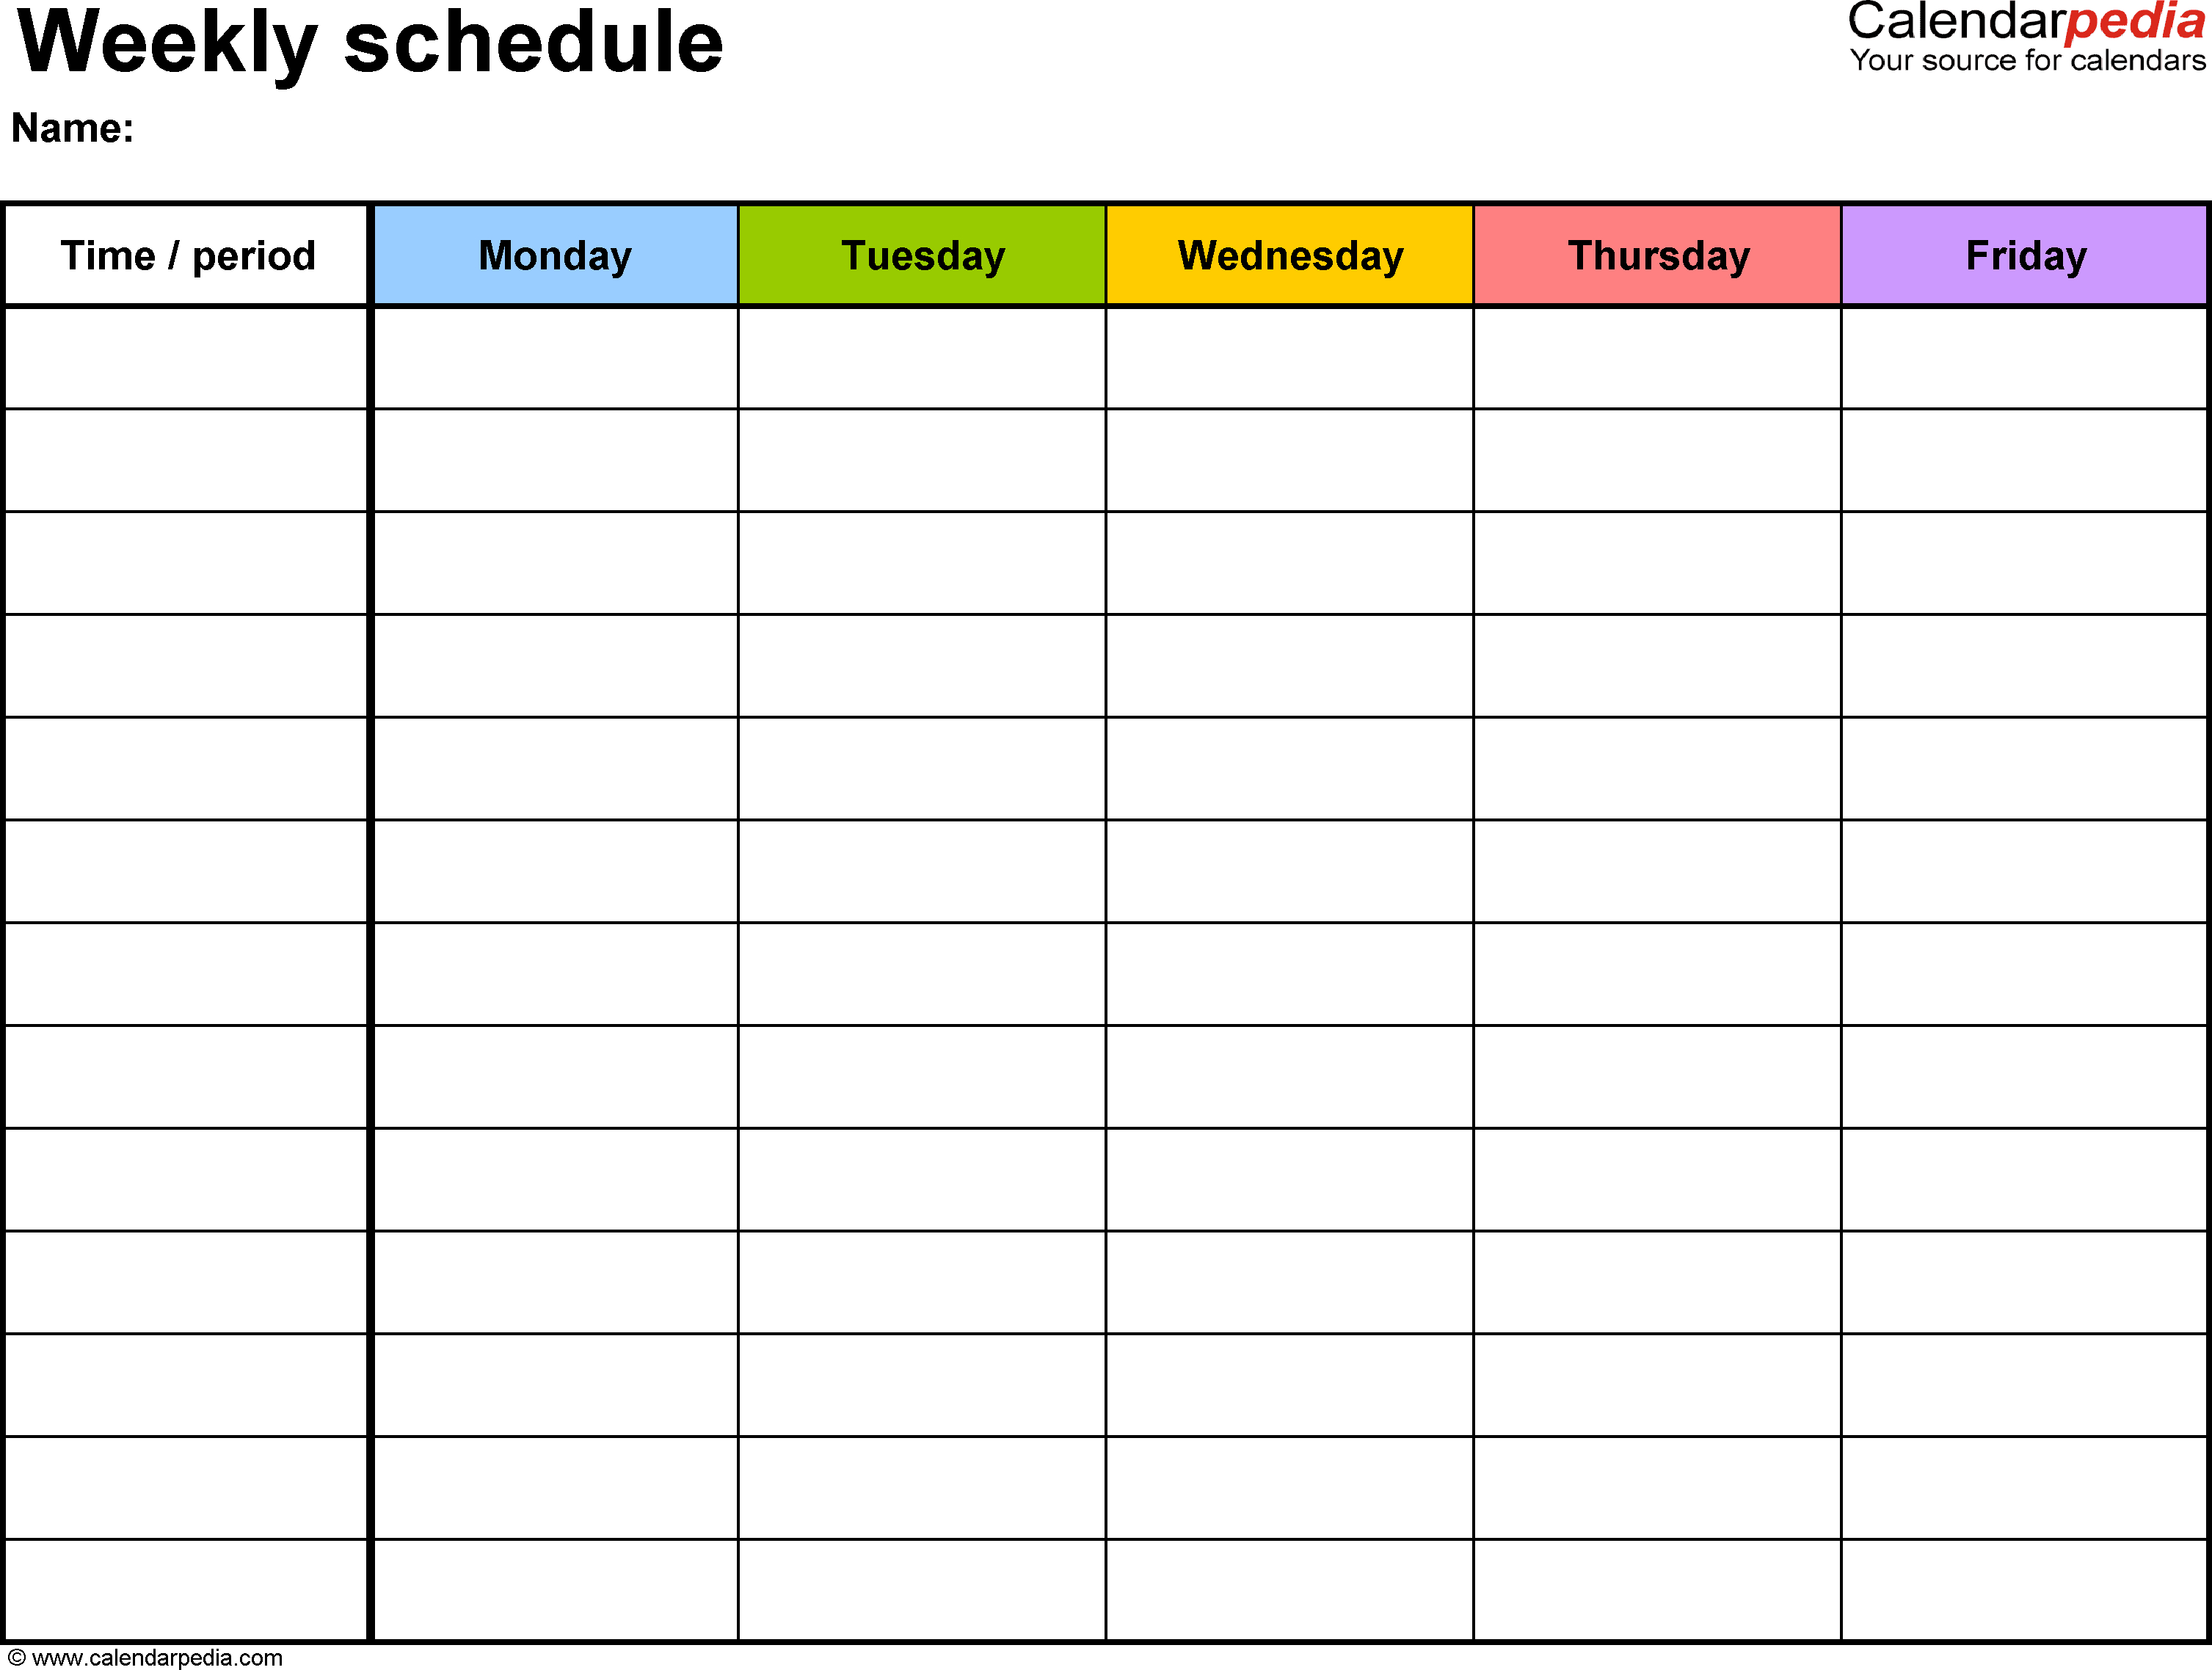 Free Weekly Schedule Templates For Excel - 18 Templates inside 6 Week Work Schedule Template